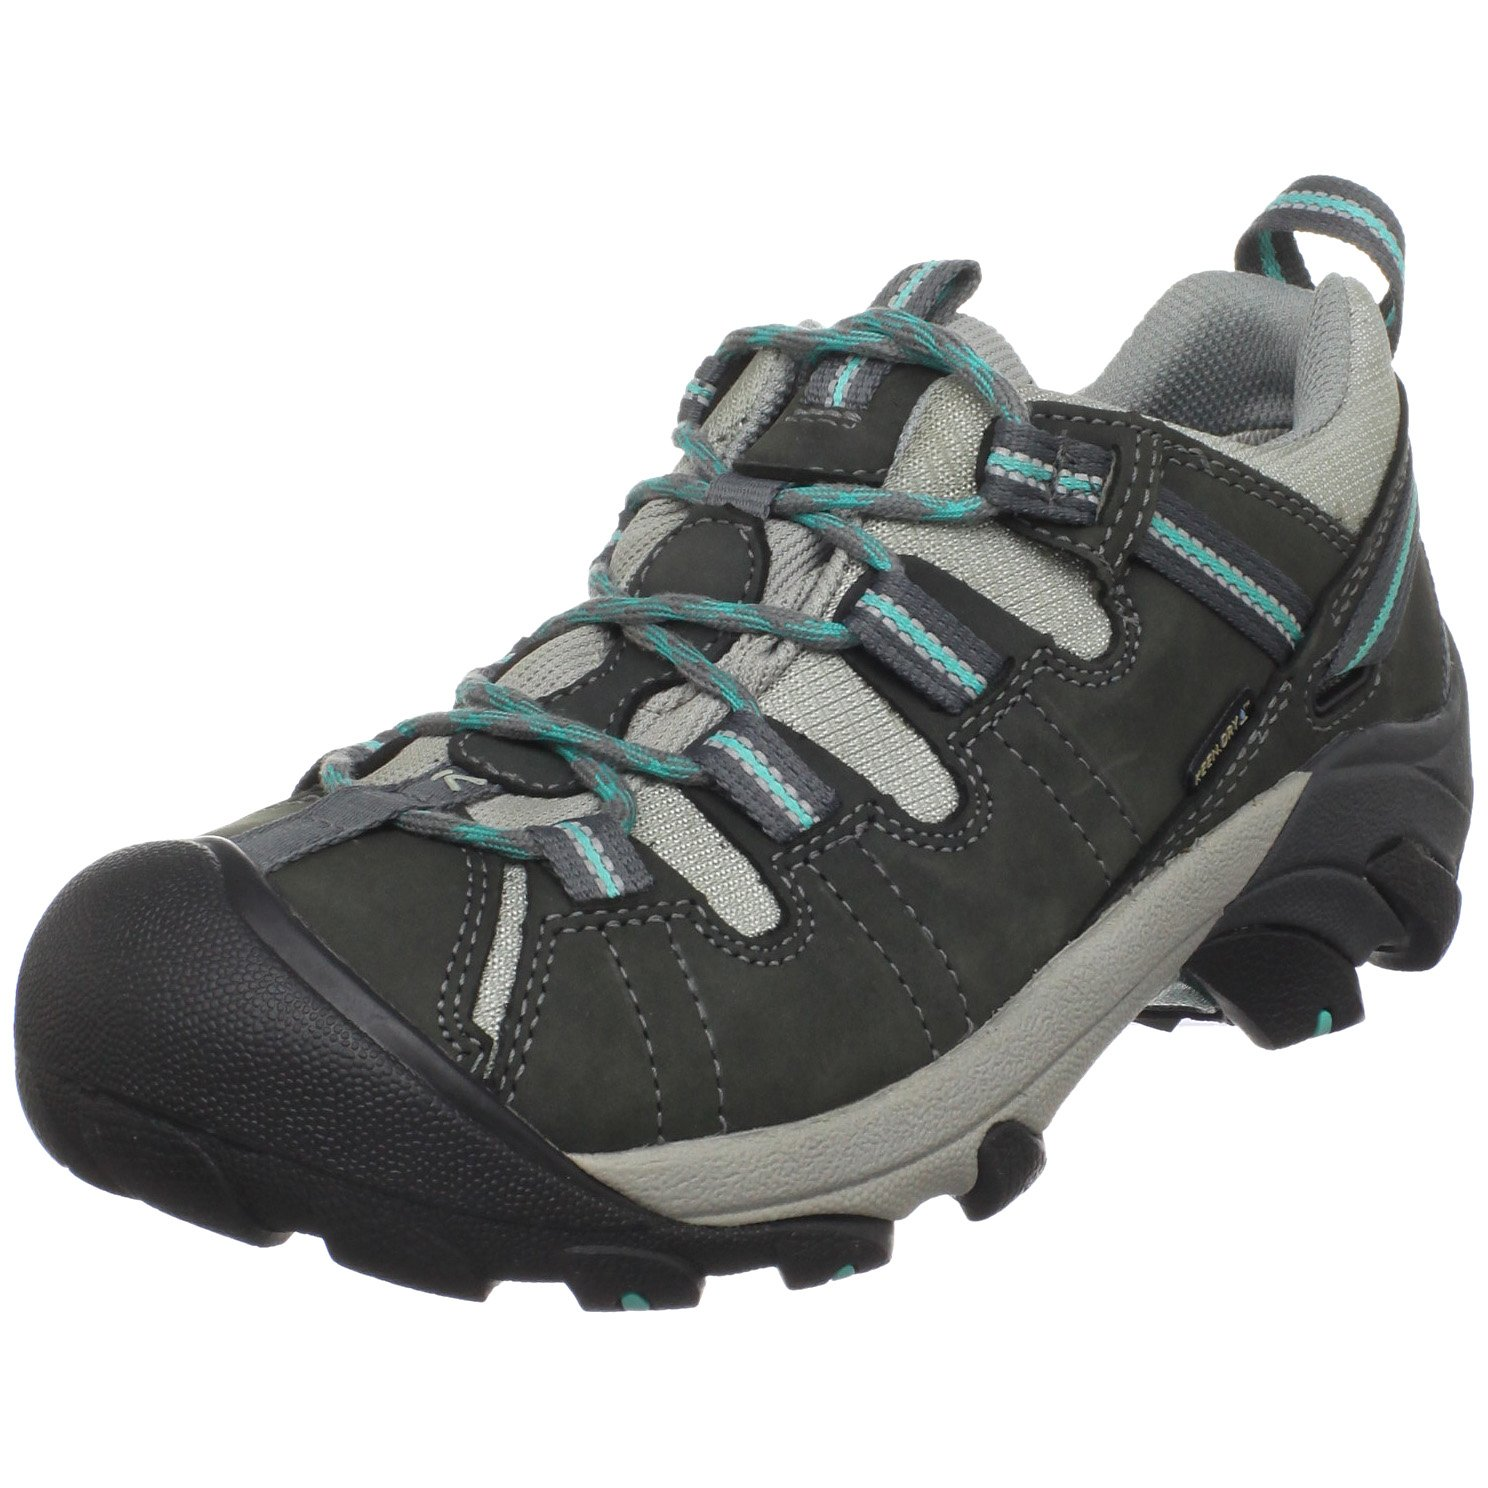 KEEN Women's Targhee II Waterproof Hiking Shoe,Gargoyle/Ceramic,8.5 M US by KEEN